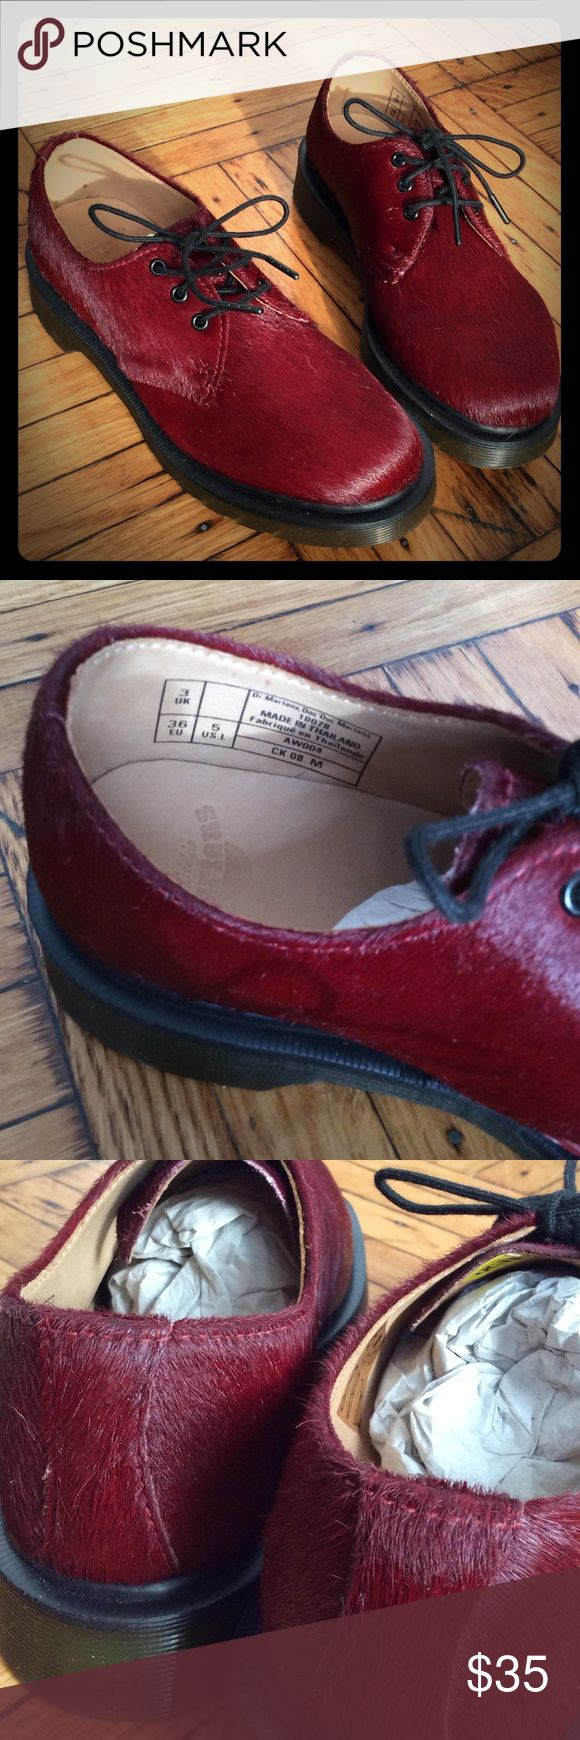 Dr.Martens 3-eye Gibson NEVER WORN BRAND NEW Furry red NEVER WORN BRAND NEW Dr.Martens 3-eye Gibson 1461 worker shoes Dr. Martens Shoes Lace Up Boots